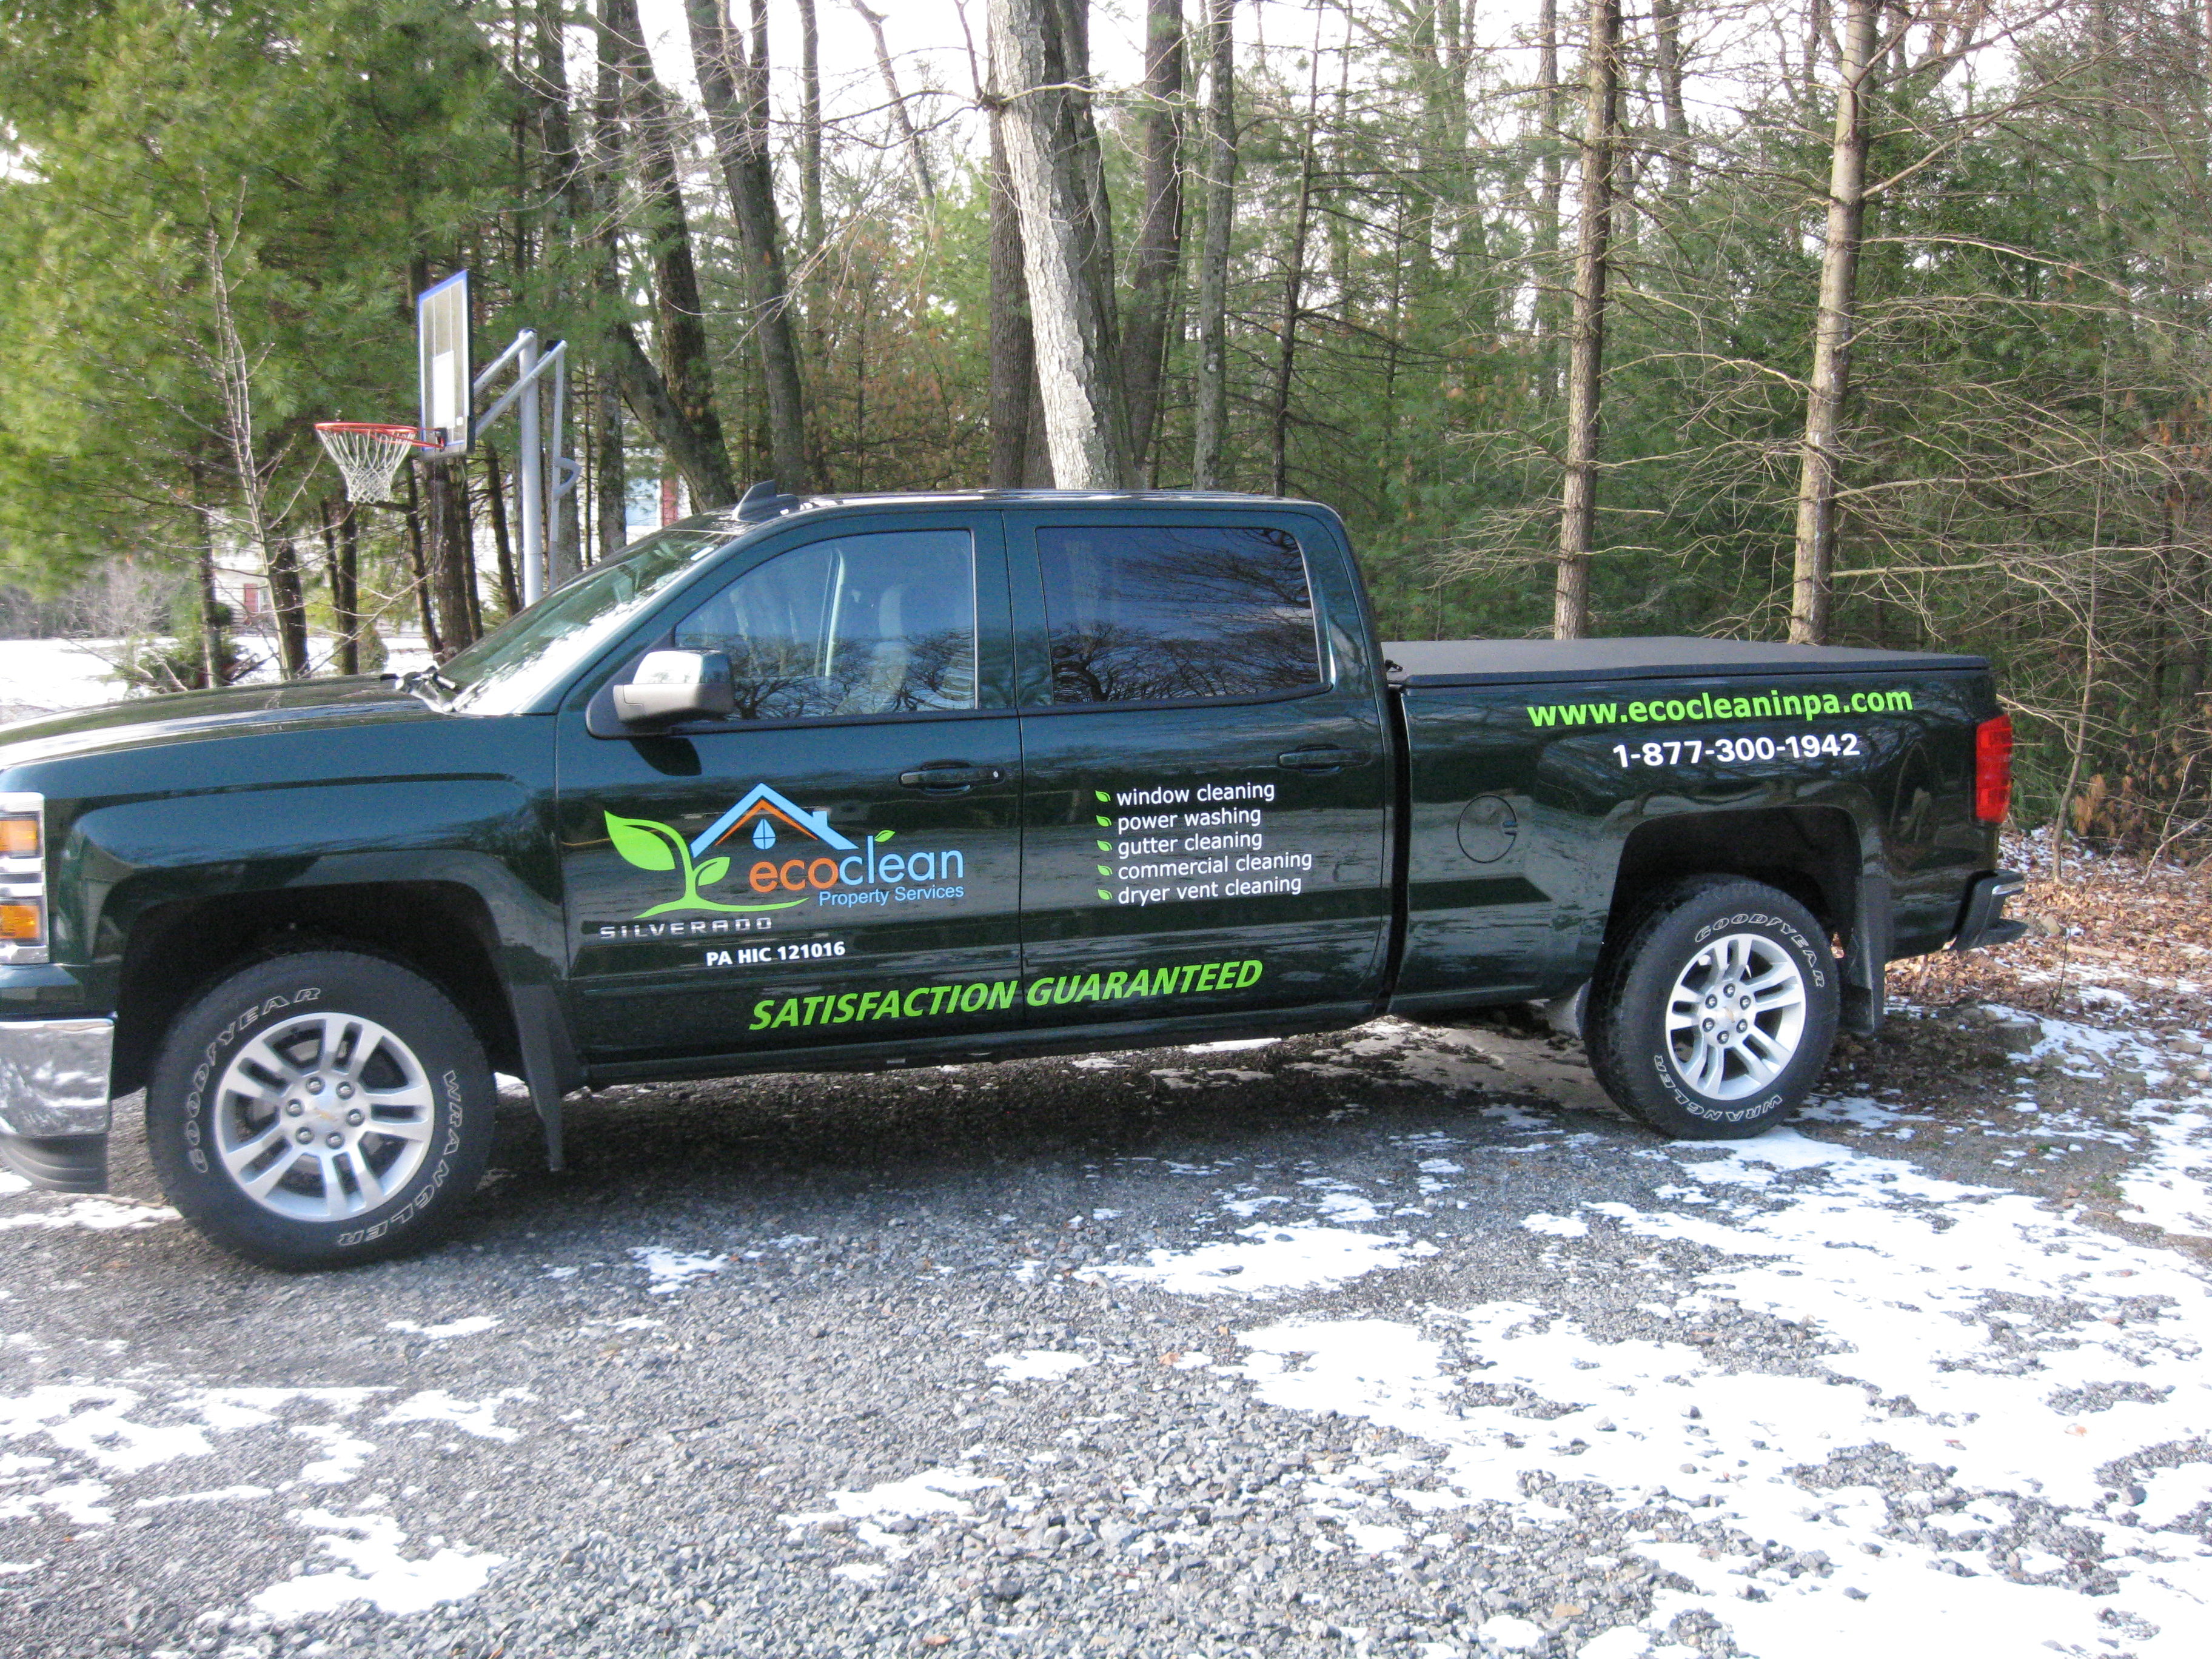 Ecoclean company truck